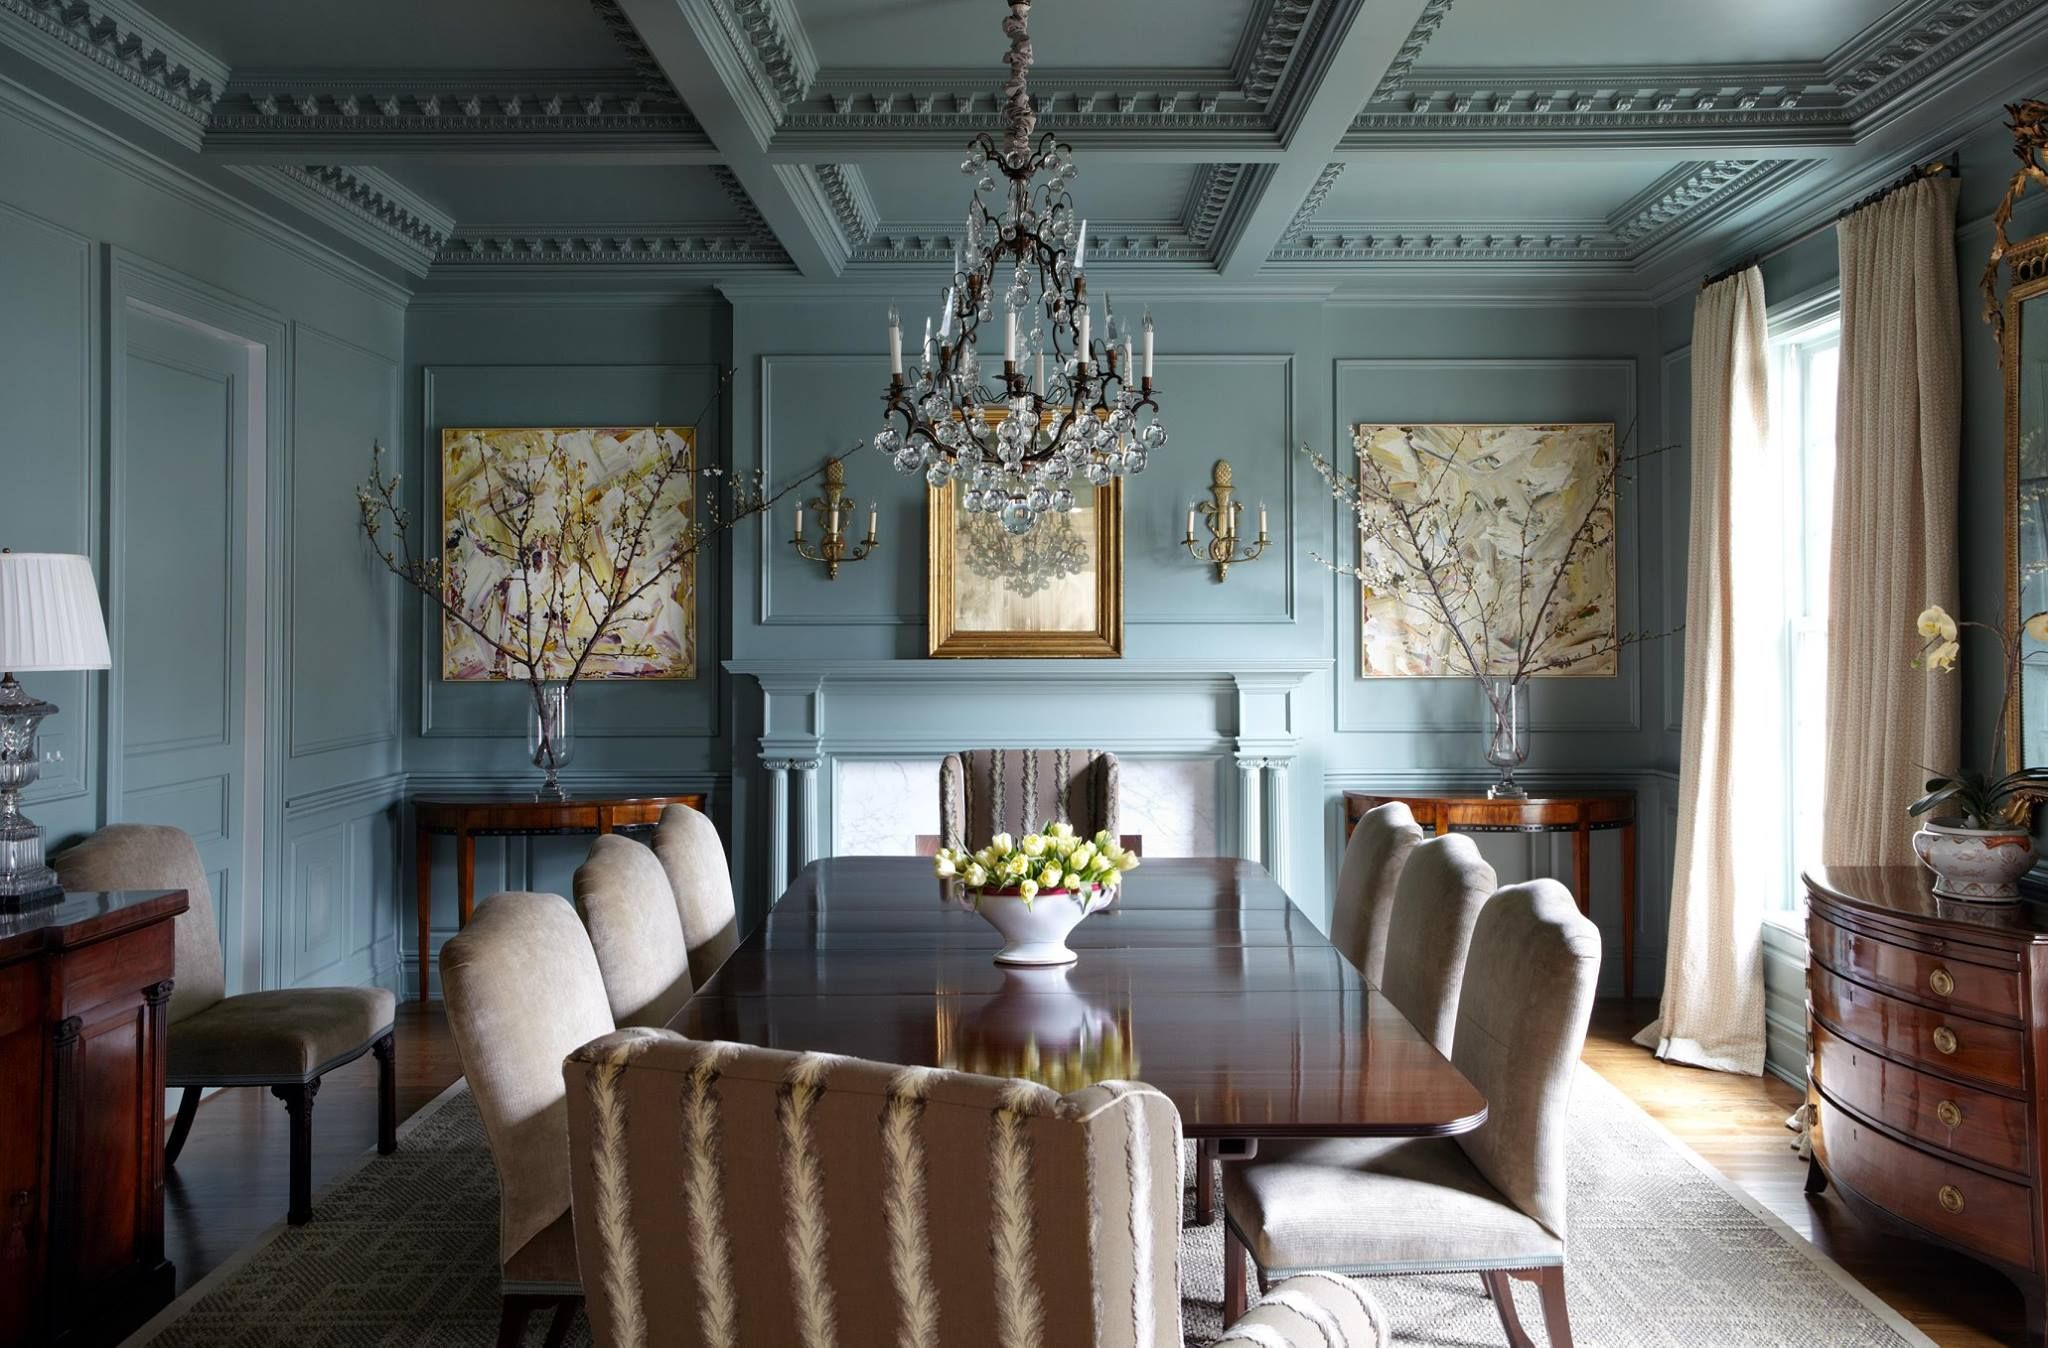 Farrow U0026 Ball Green Blue English Country Dining. I Love This Look. The Color